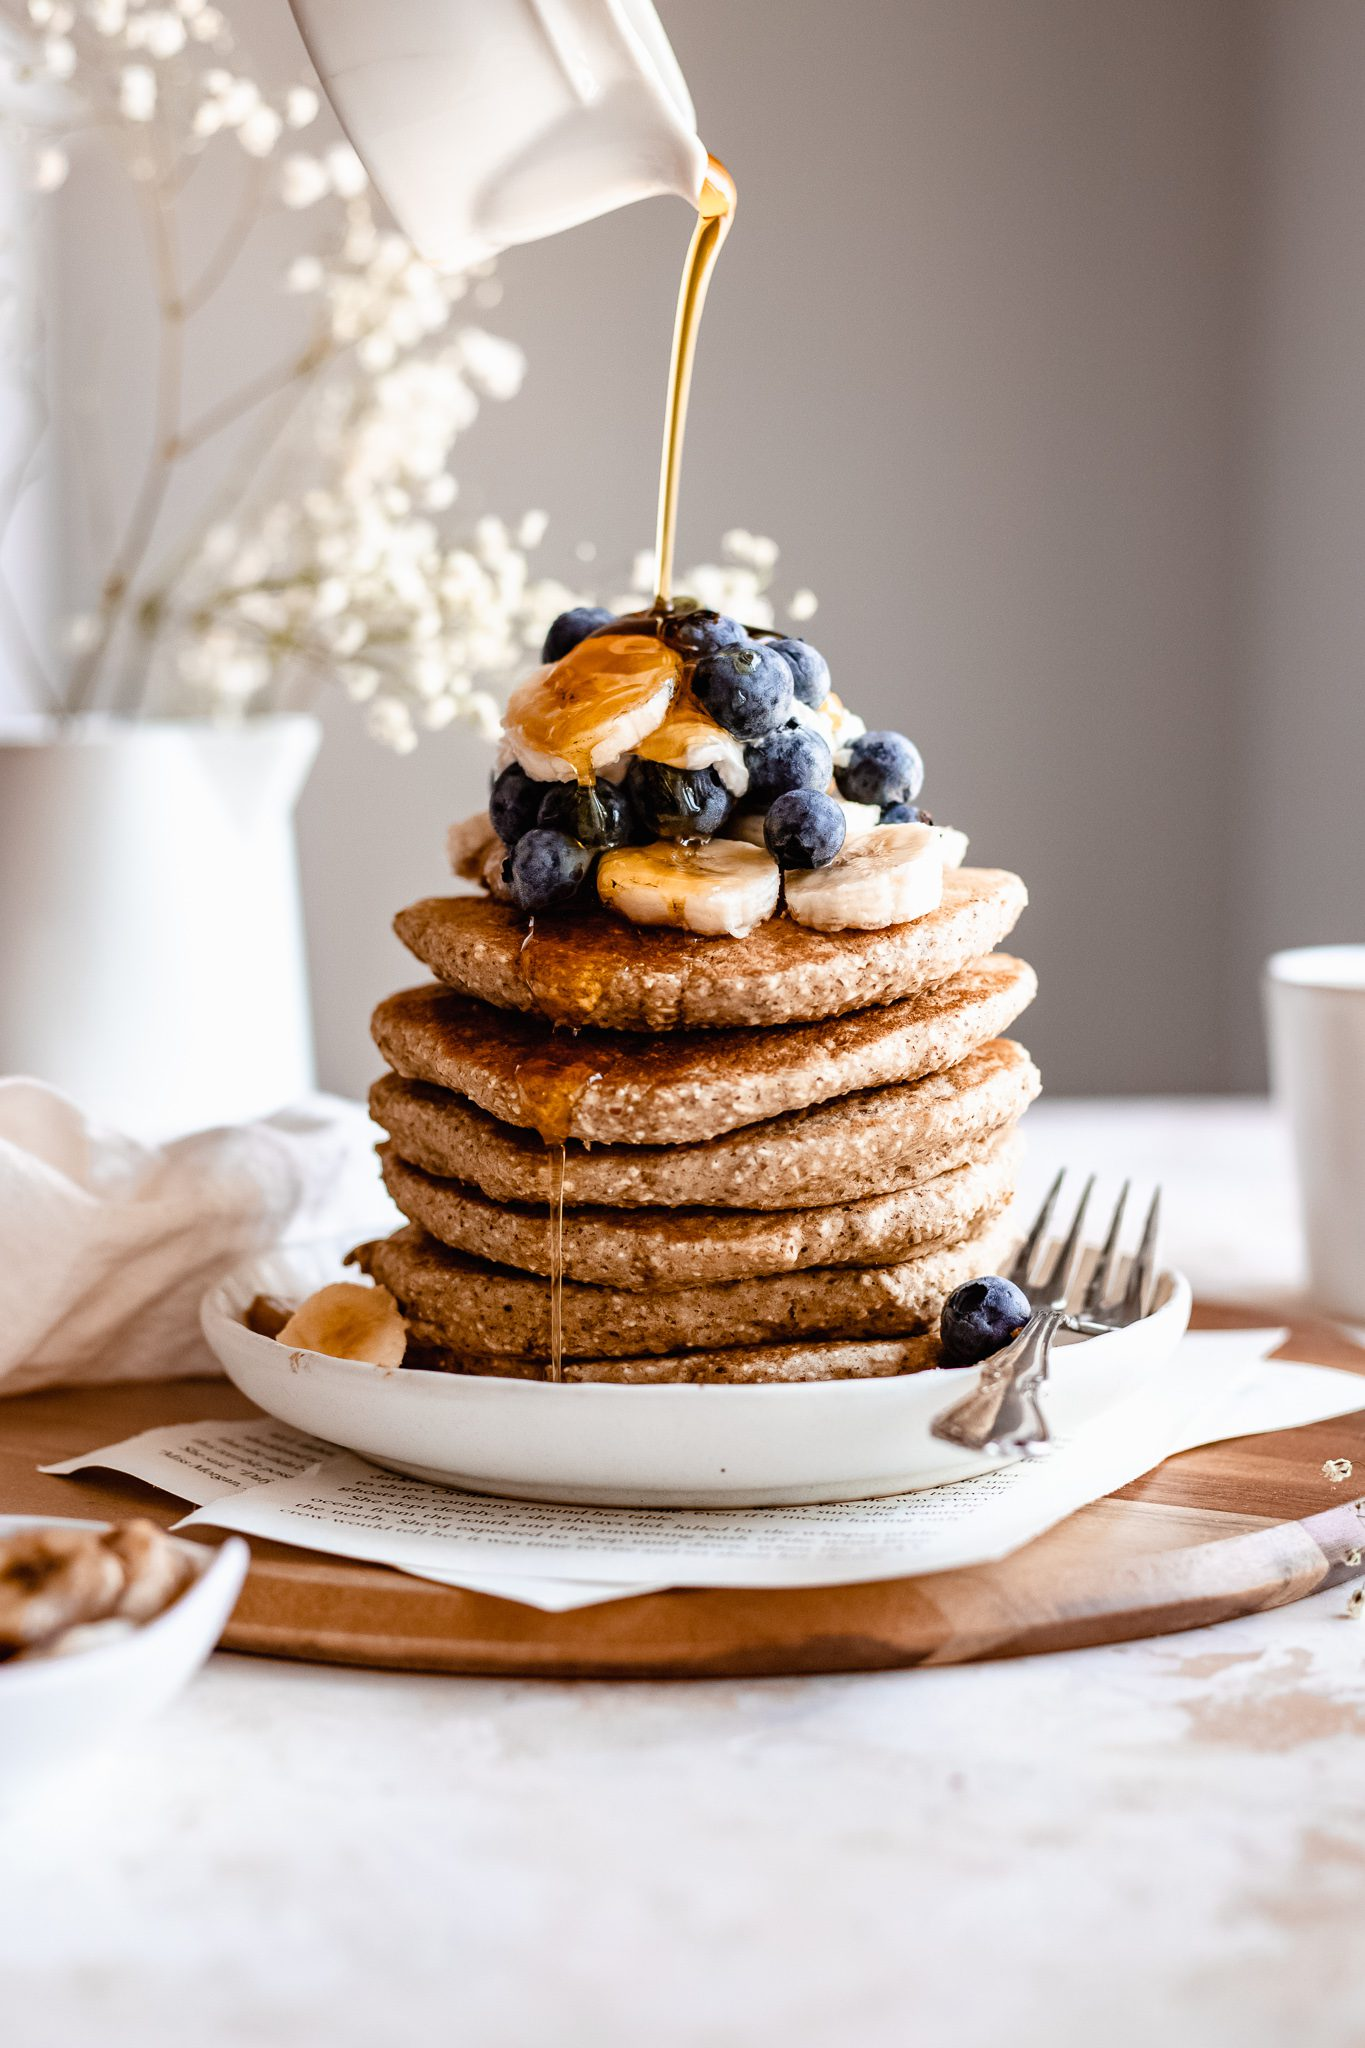 Hand drizzle maple syrup on top of oatmeal pancakes topped with banana and blueberries